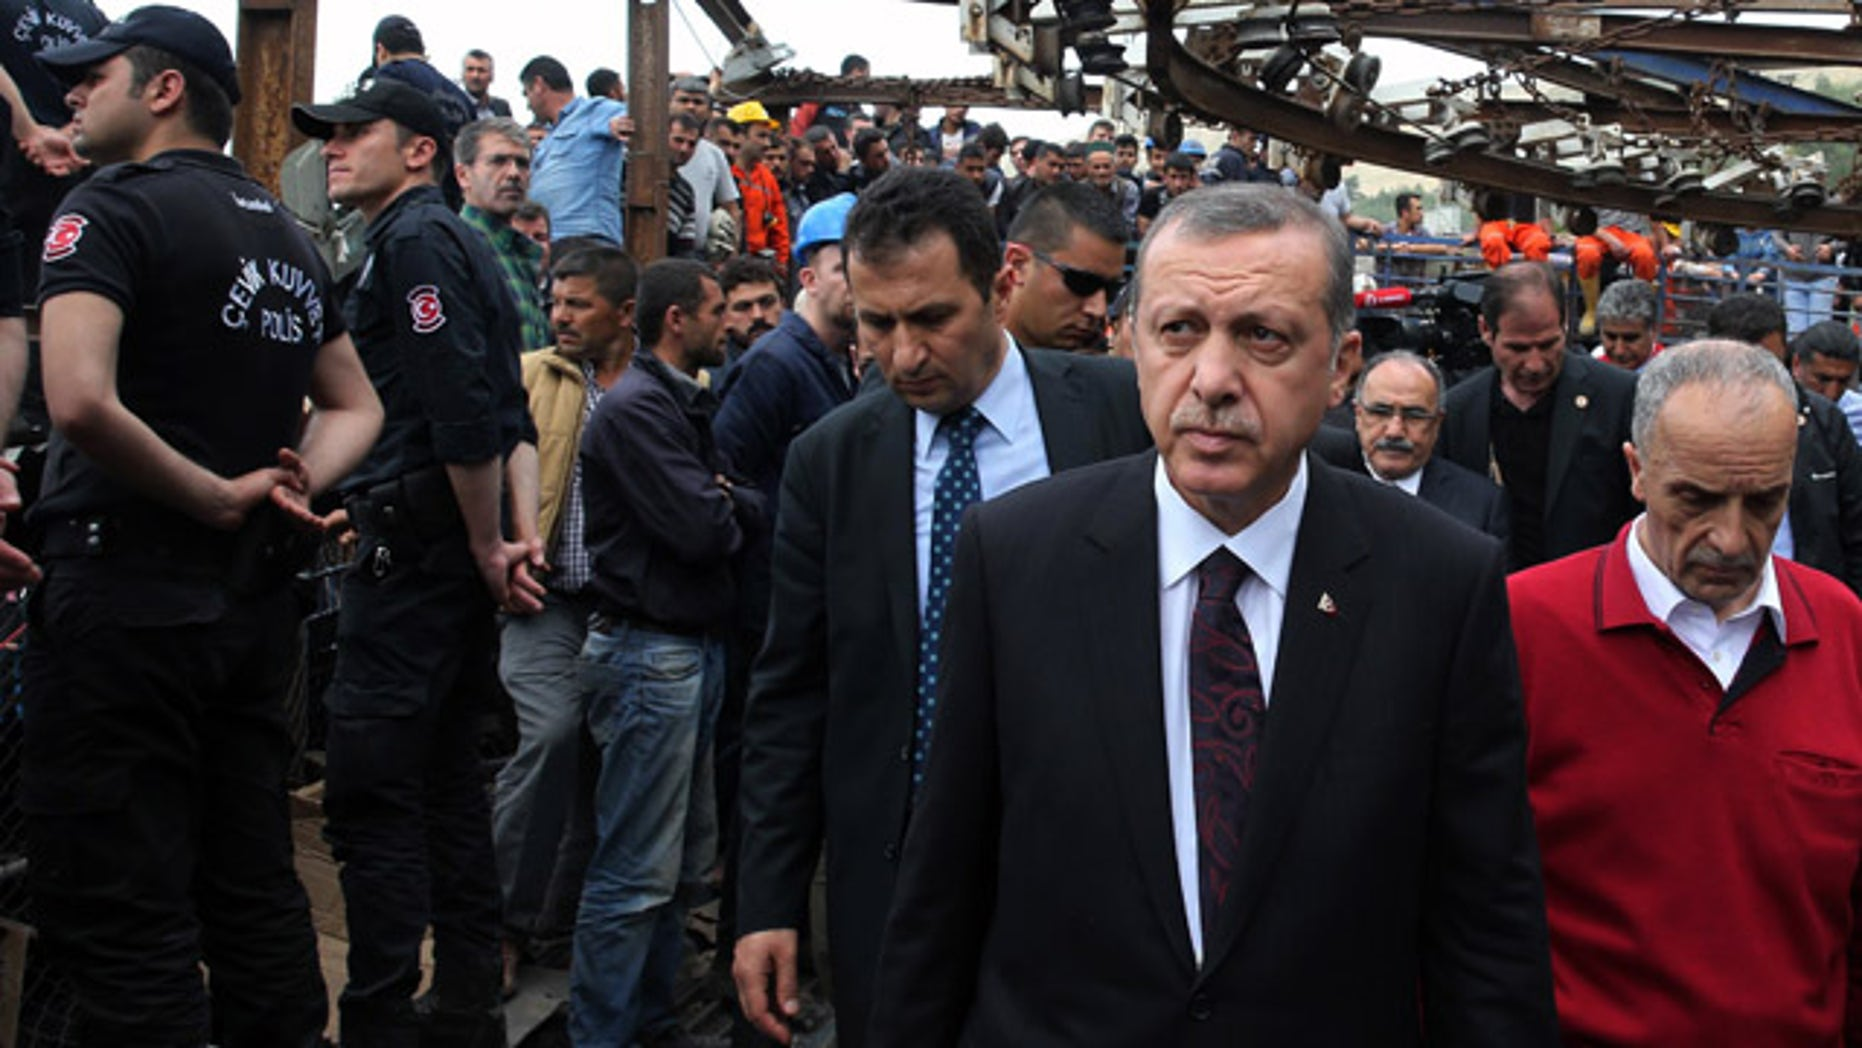 May 14, 2014: In this photo released by the Turkish Prime Minister's Press Office, Turkish Prime Minister Recep Tayyip Erdogan is surrounded by security members as he visits the coal mine in Soma, Turkey (AP Photo/Kayhan Ozer, Turkish Prime Minister's Press Office, HO)